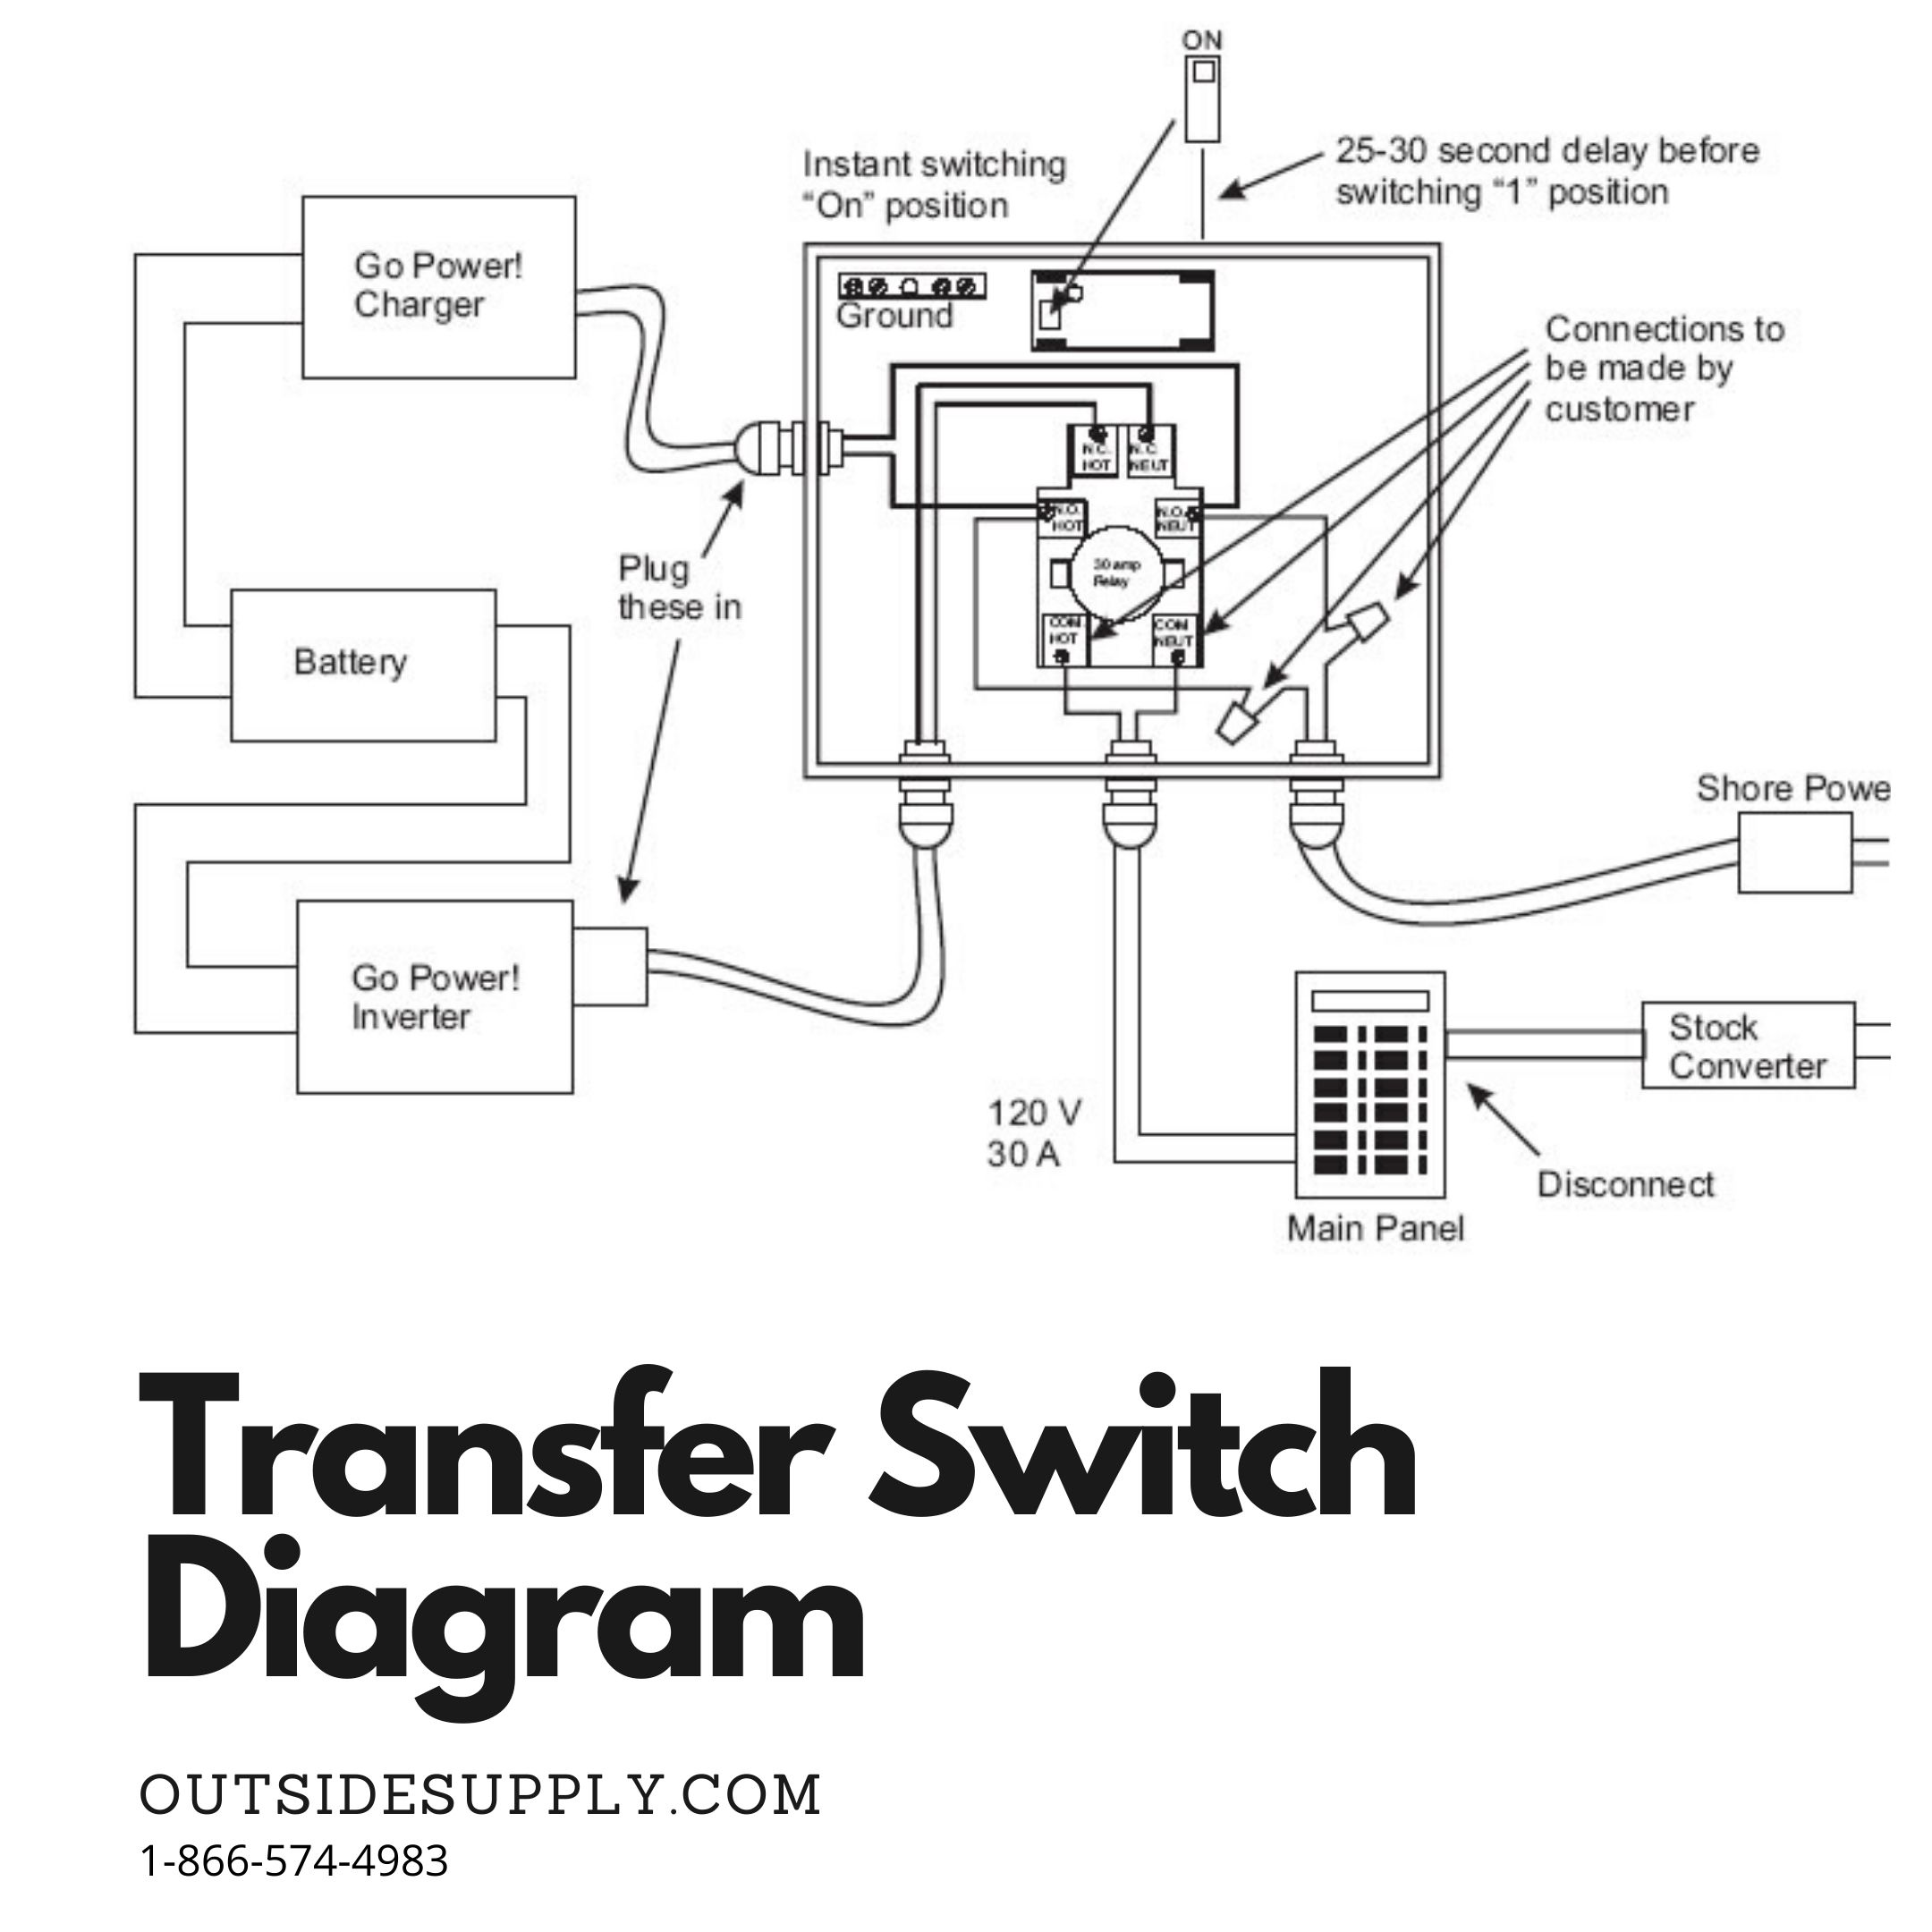 Wiring Diagram as well Milbank 200 Meter Socket Wiring Diagram furthermore Showimage also Rv 30 Sub Panel Wiring Diagram further Wiring diagram. on 200 amp transfer switch for generator